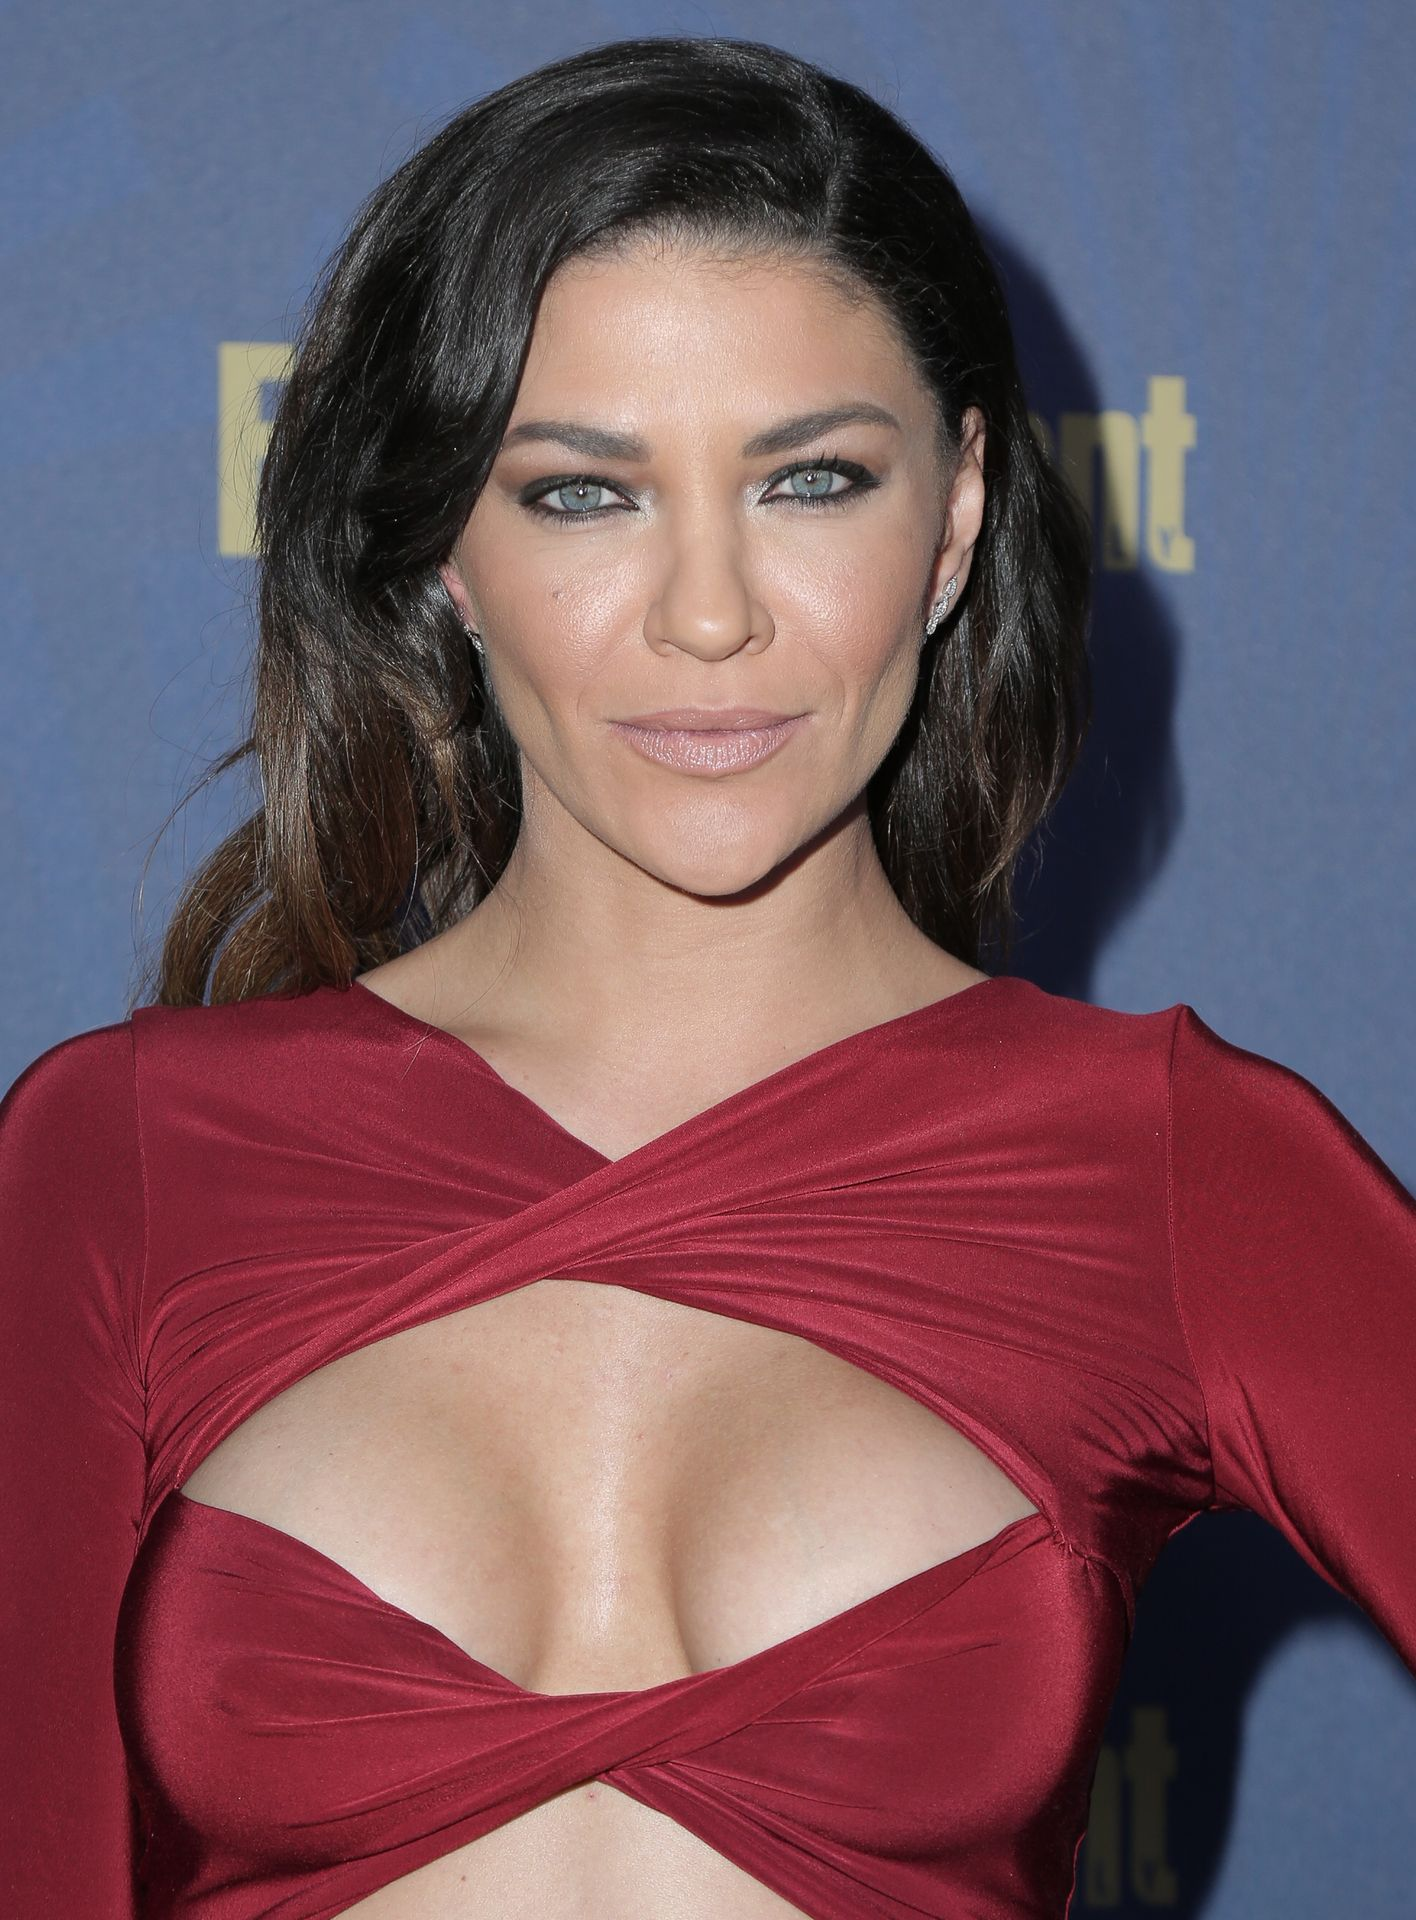 Jessica Szohr Shows Her Cleavage At The Entertainment Weekly Pre Sag Awards Celebration 0013